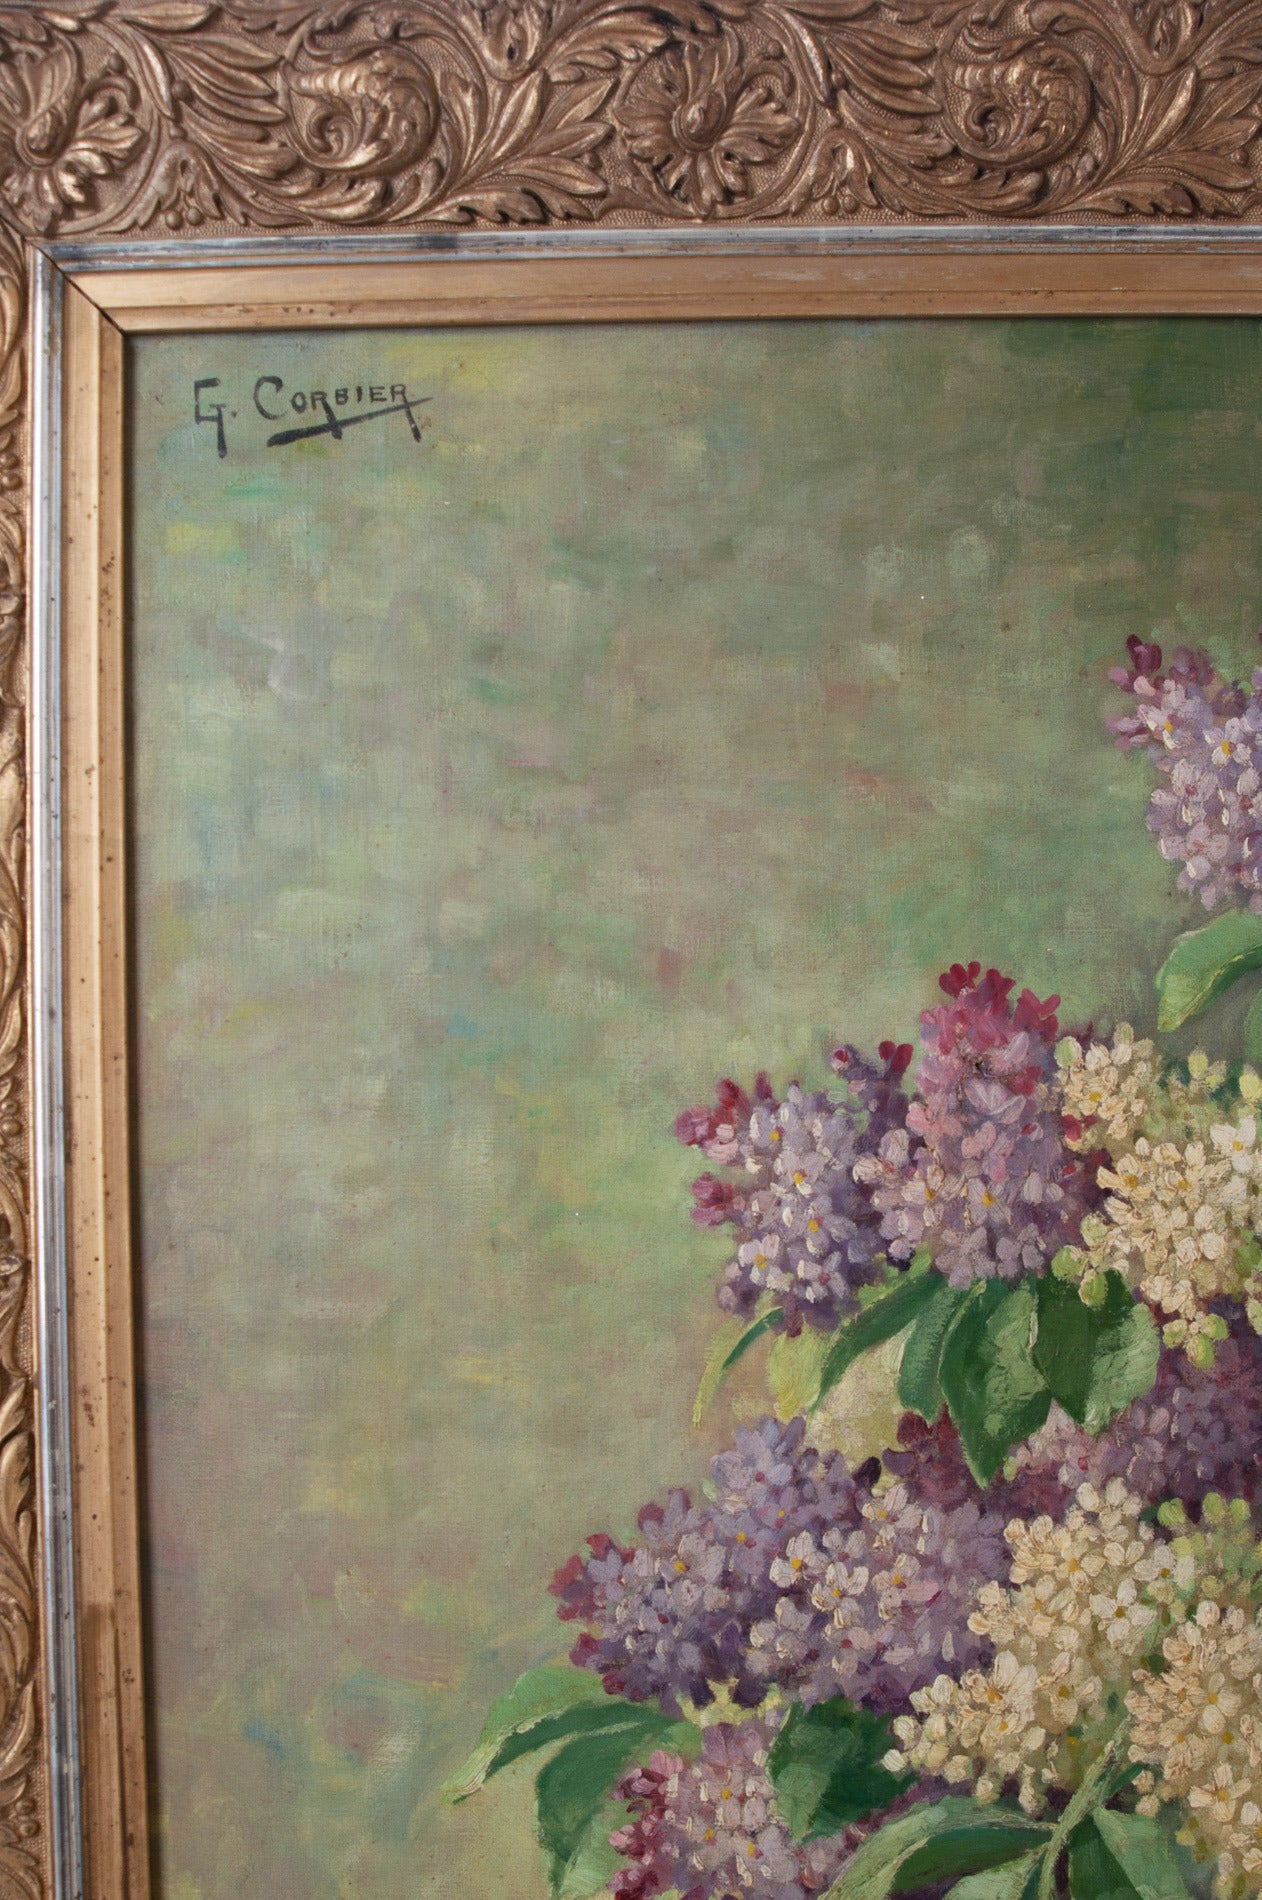 19th Century G. Corbier Oil Painting of Lilac Flowers with Carved Gilt Frame For Sale